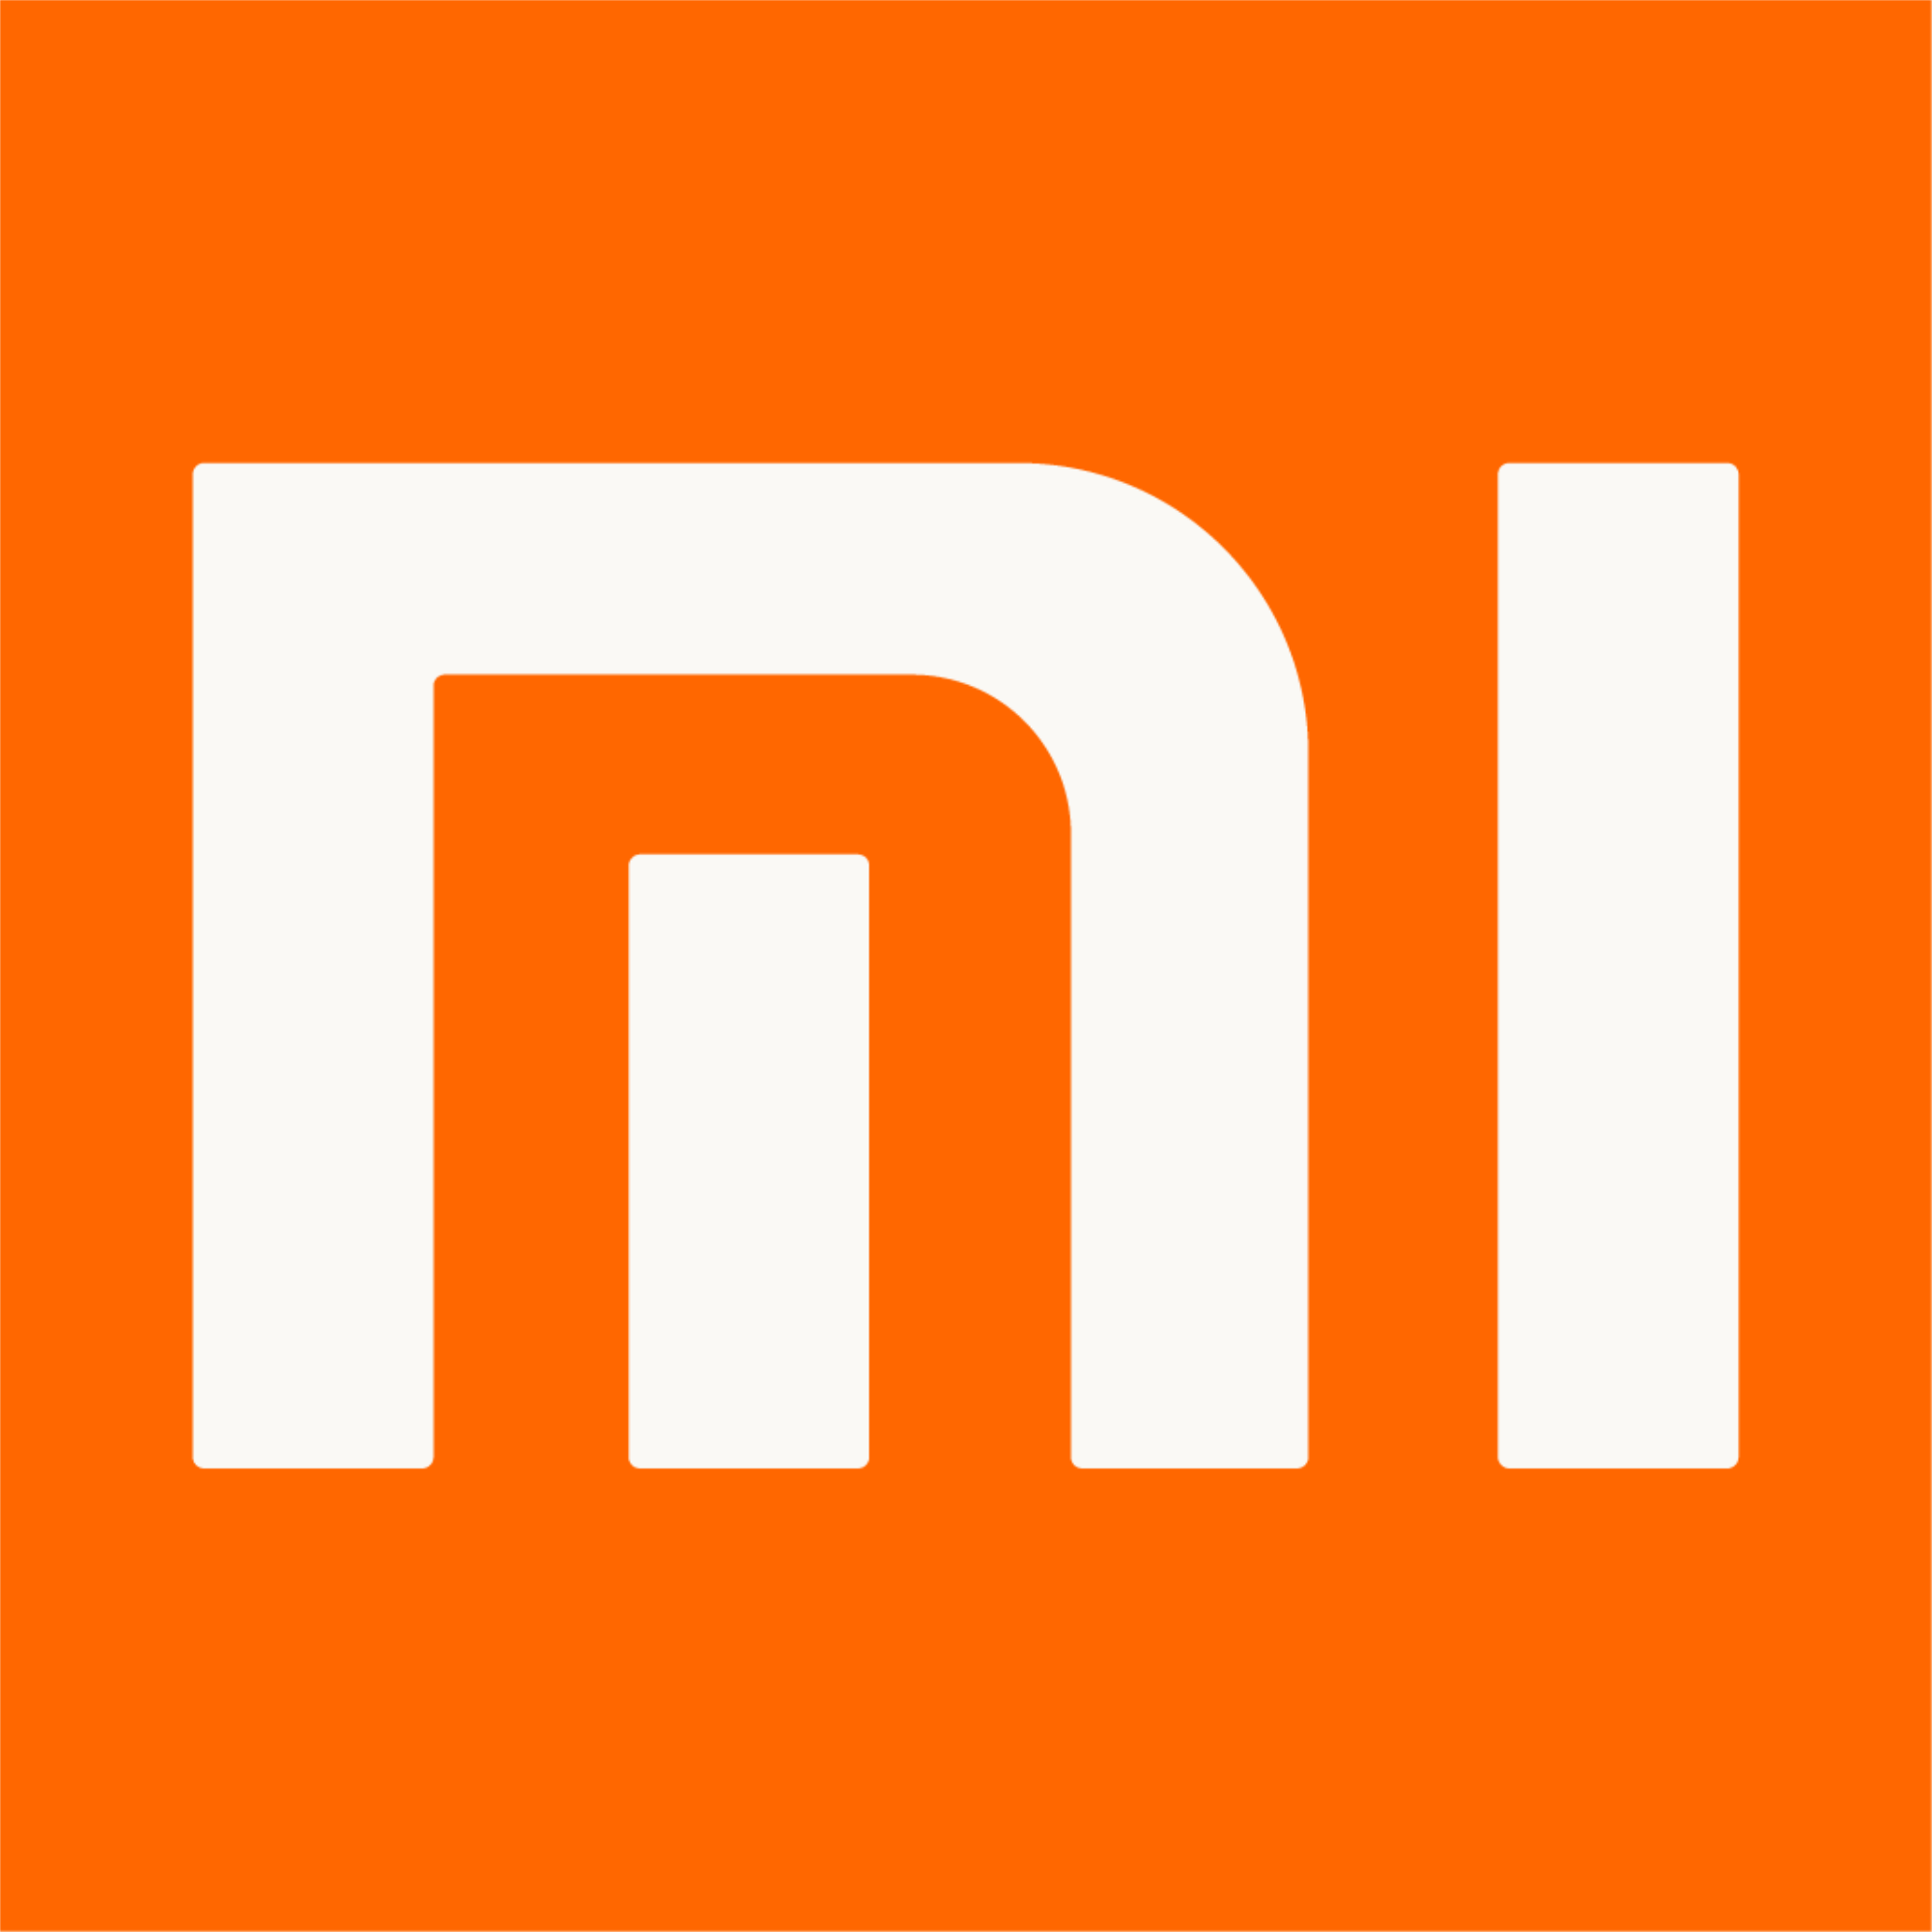 New Svg Image - Xiaomi, Transparent background PNG HD thumbnail